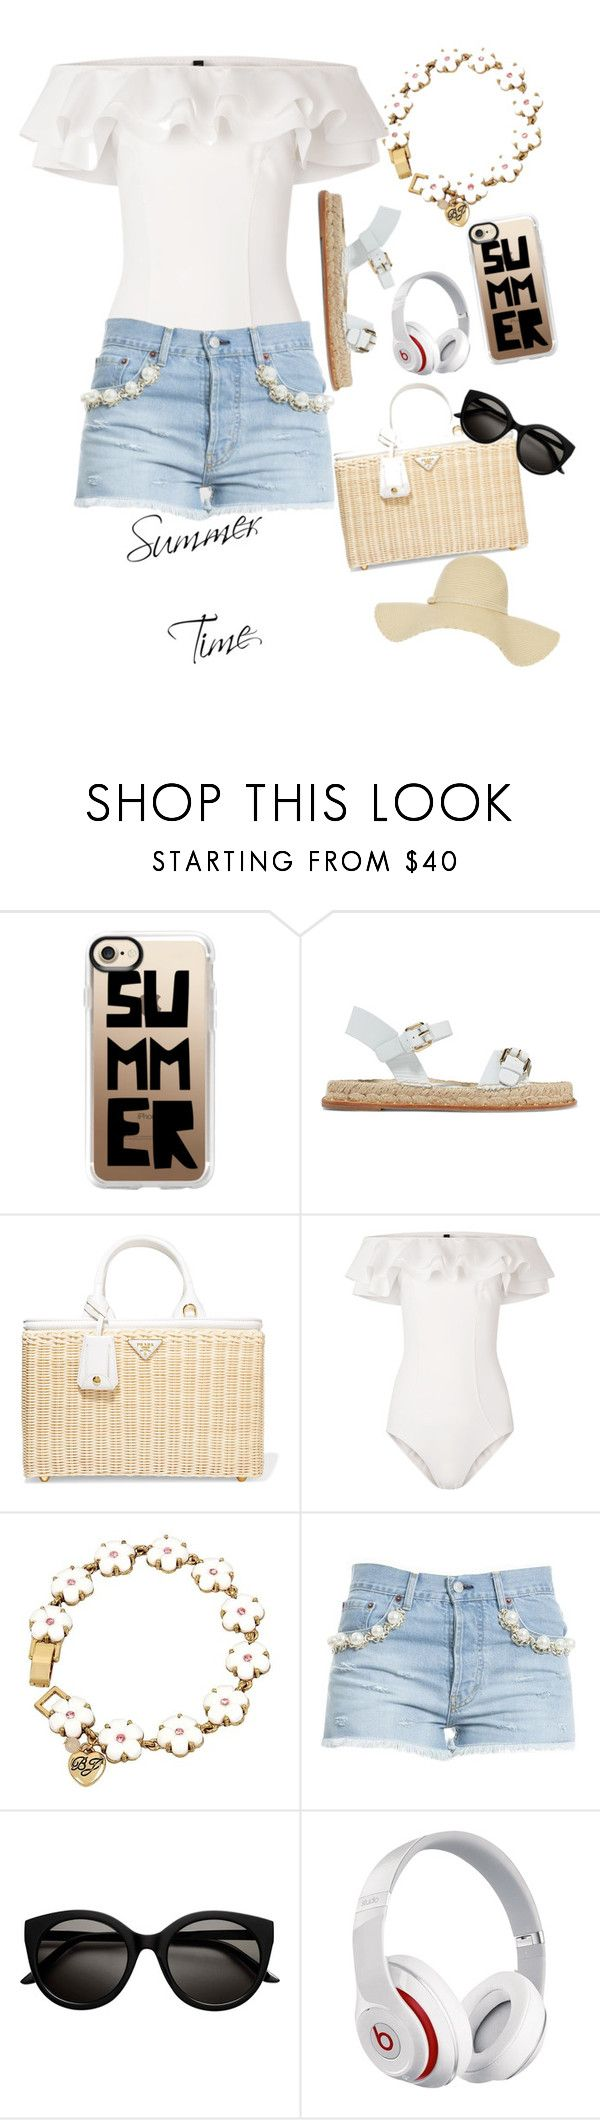 """summer white"" by jennifertc ❤ liked on Polyvore featuring Casetify, Paloma Barceló, Prada, Lisa Marie Fernandez, Betsey Johnson, Forte Couture and Beats by Dr. Dre"